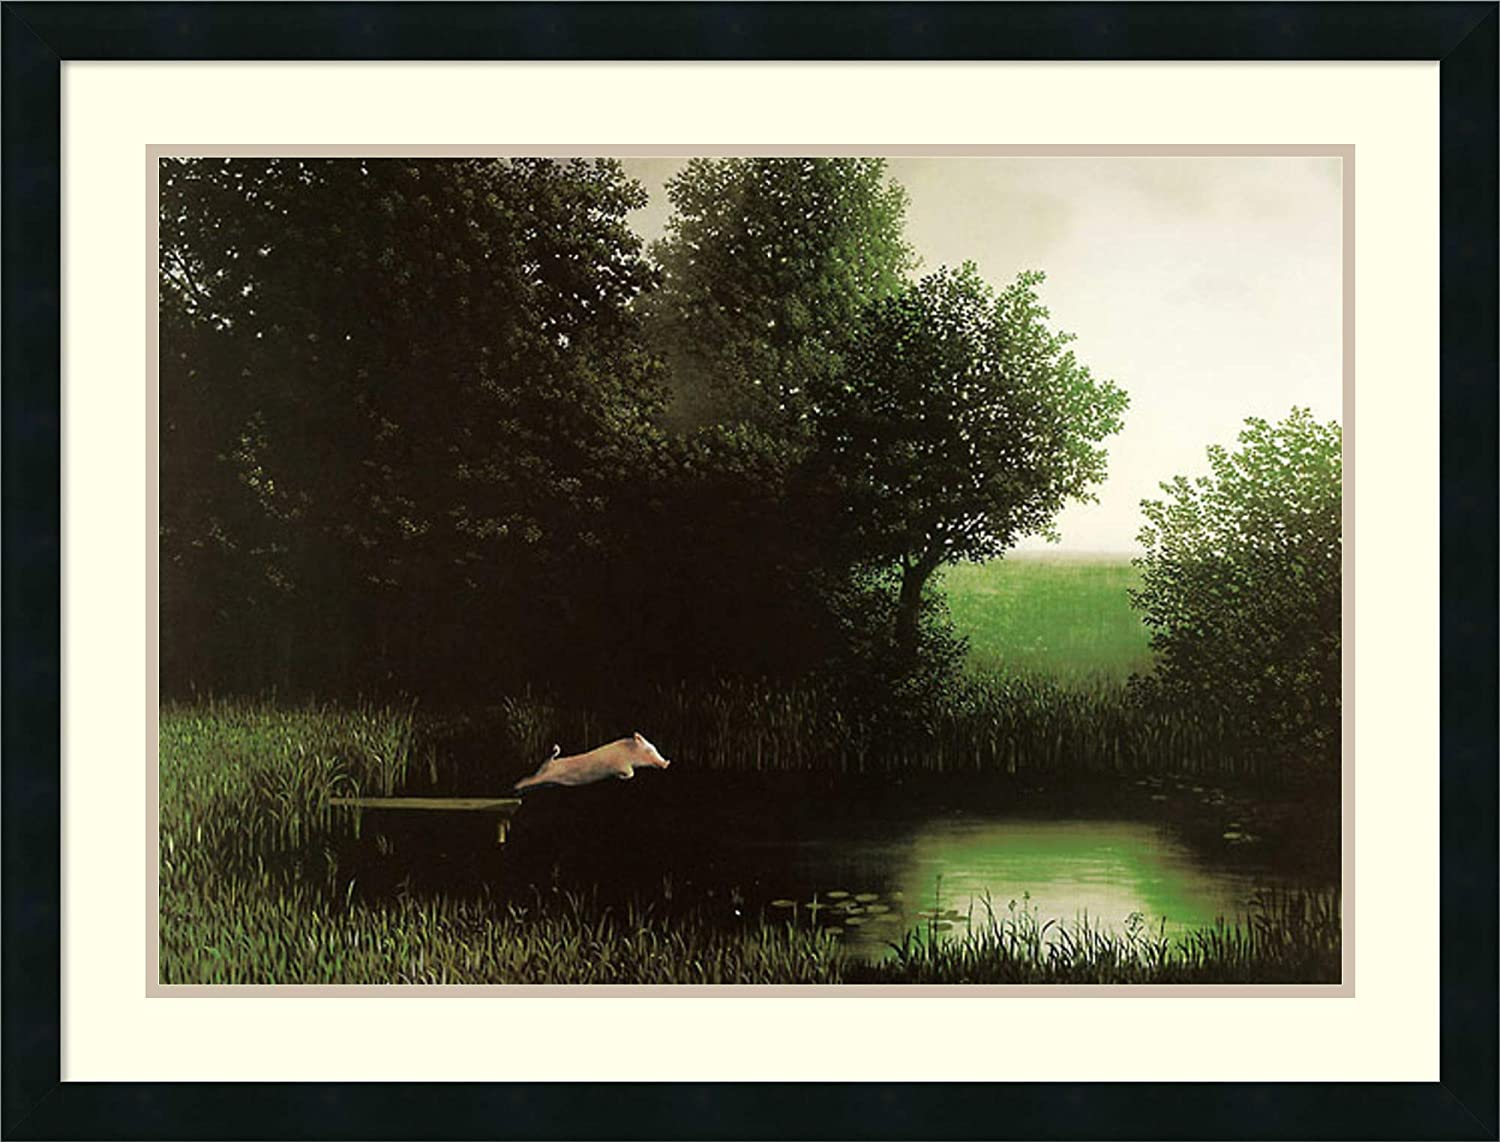 Framed Wall Art Print Diving Pig by Michael Sowa 34.25 x 26.25 in.